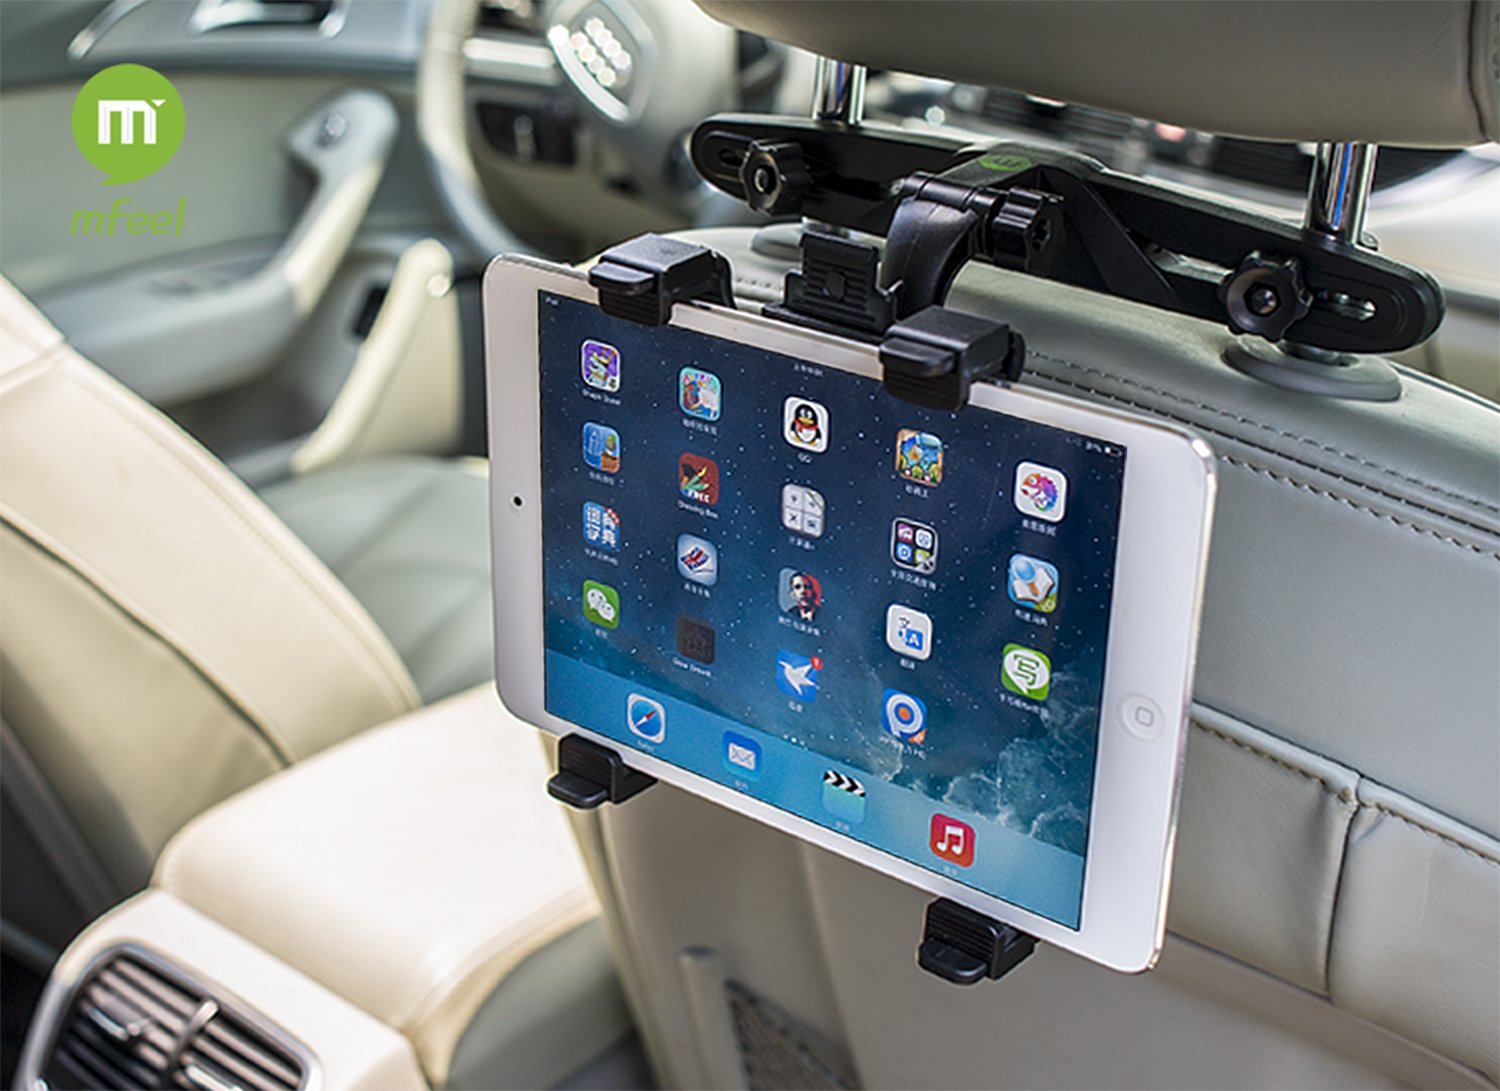 MFEEL Car Back Seat Headrest Mount Holder with 360 Degree Adjustable Rotating Travel Kit for Apple iPad 2, iPad 3, iPad 4, iPad Air, iPad Mini, iPad Mini2, iPad Mini3, Galaxy Note 10.1 - Black 3336401